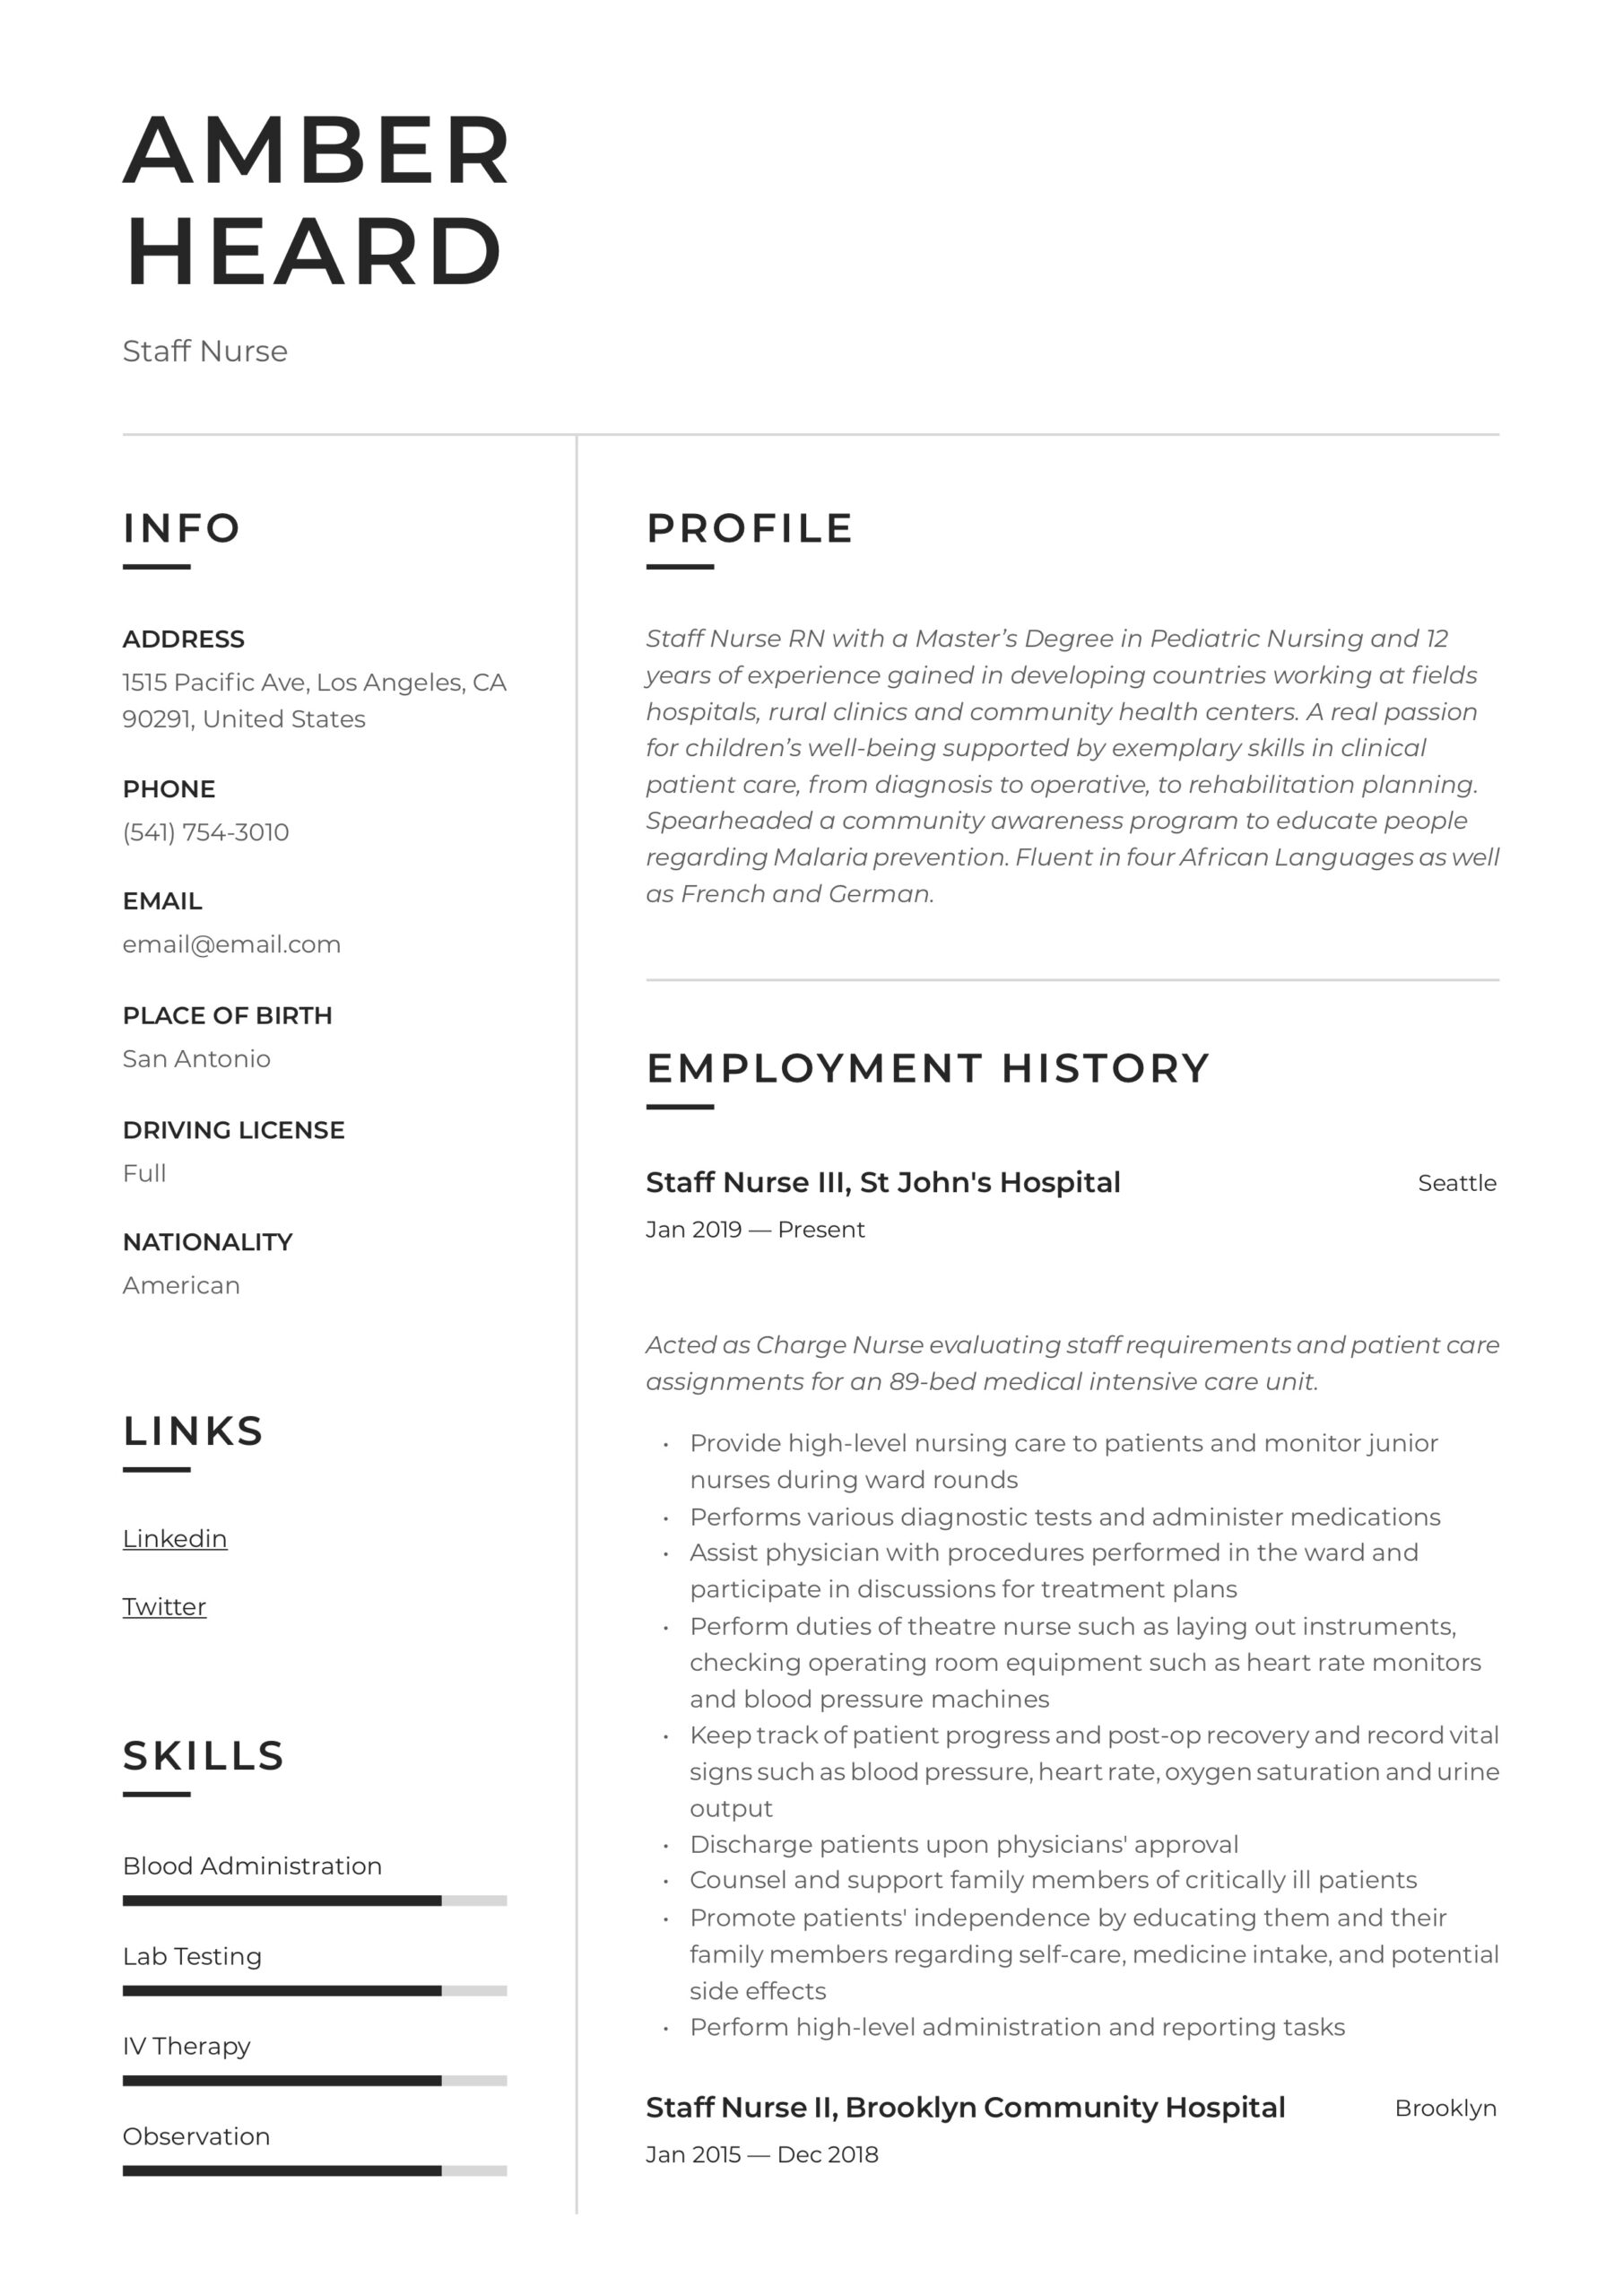 staff nurse resume writing guide templates in pdf psychiatric charge supply chain Resume Psychiatric Charge Nurse Resume